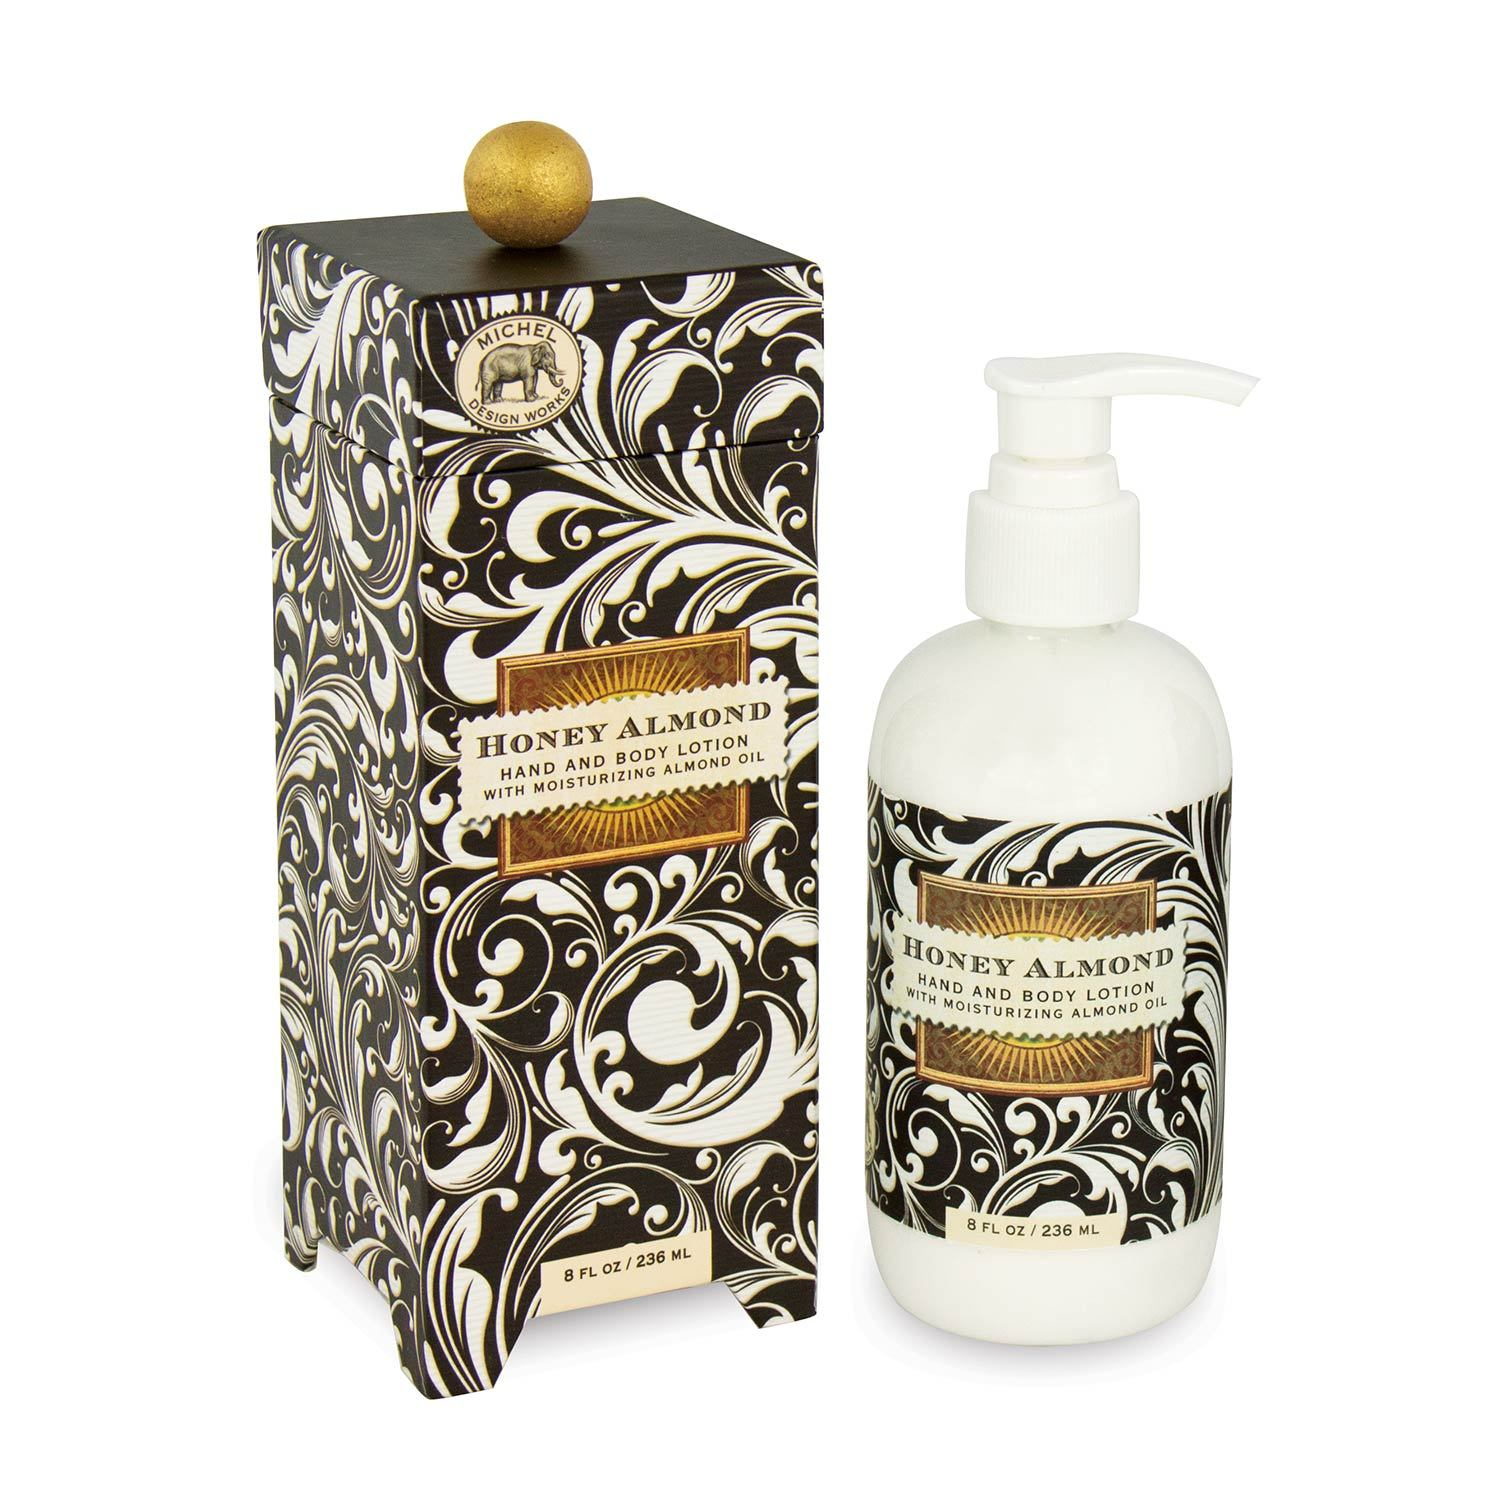 HONEY ALMOND HAND AND BODY LOTION LOT182 - Molly's! A Chic and Unique Boutique